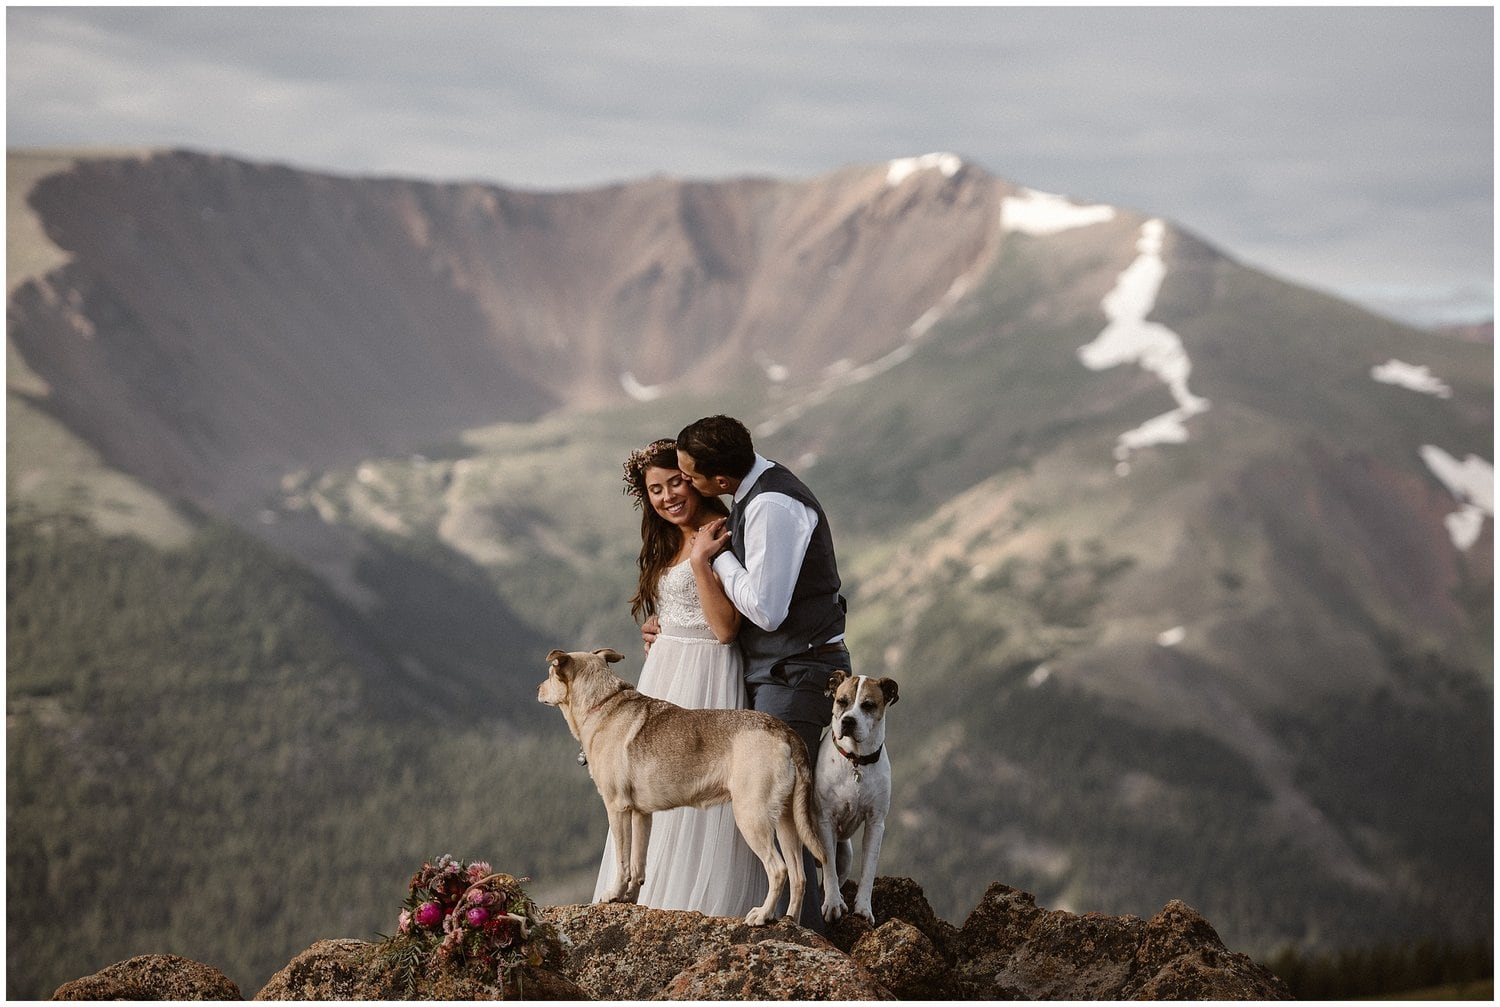 Bride and groom embrace on top of a mountain with their two dogs by their side.